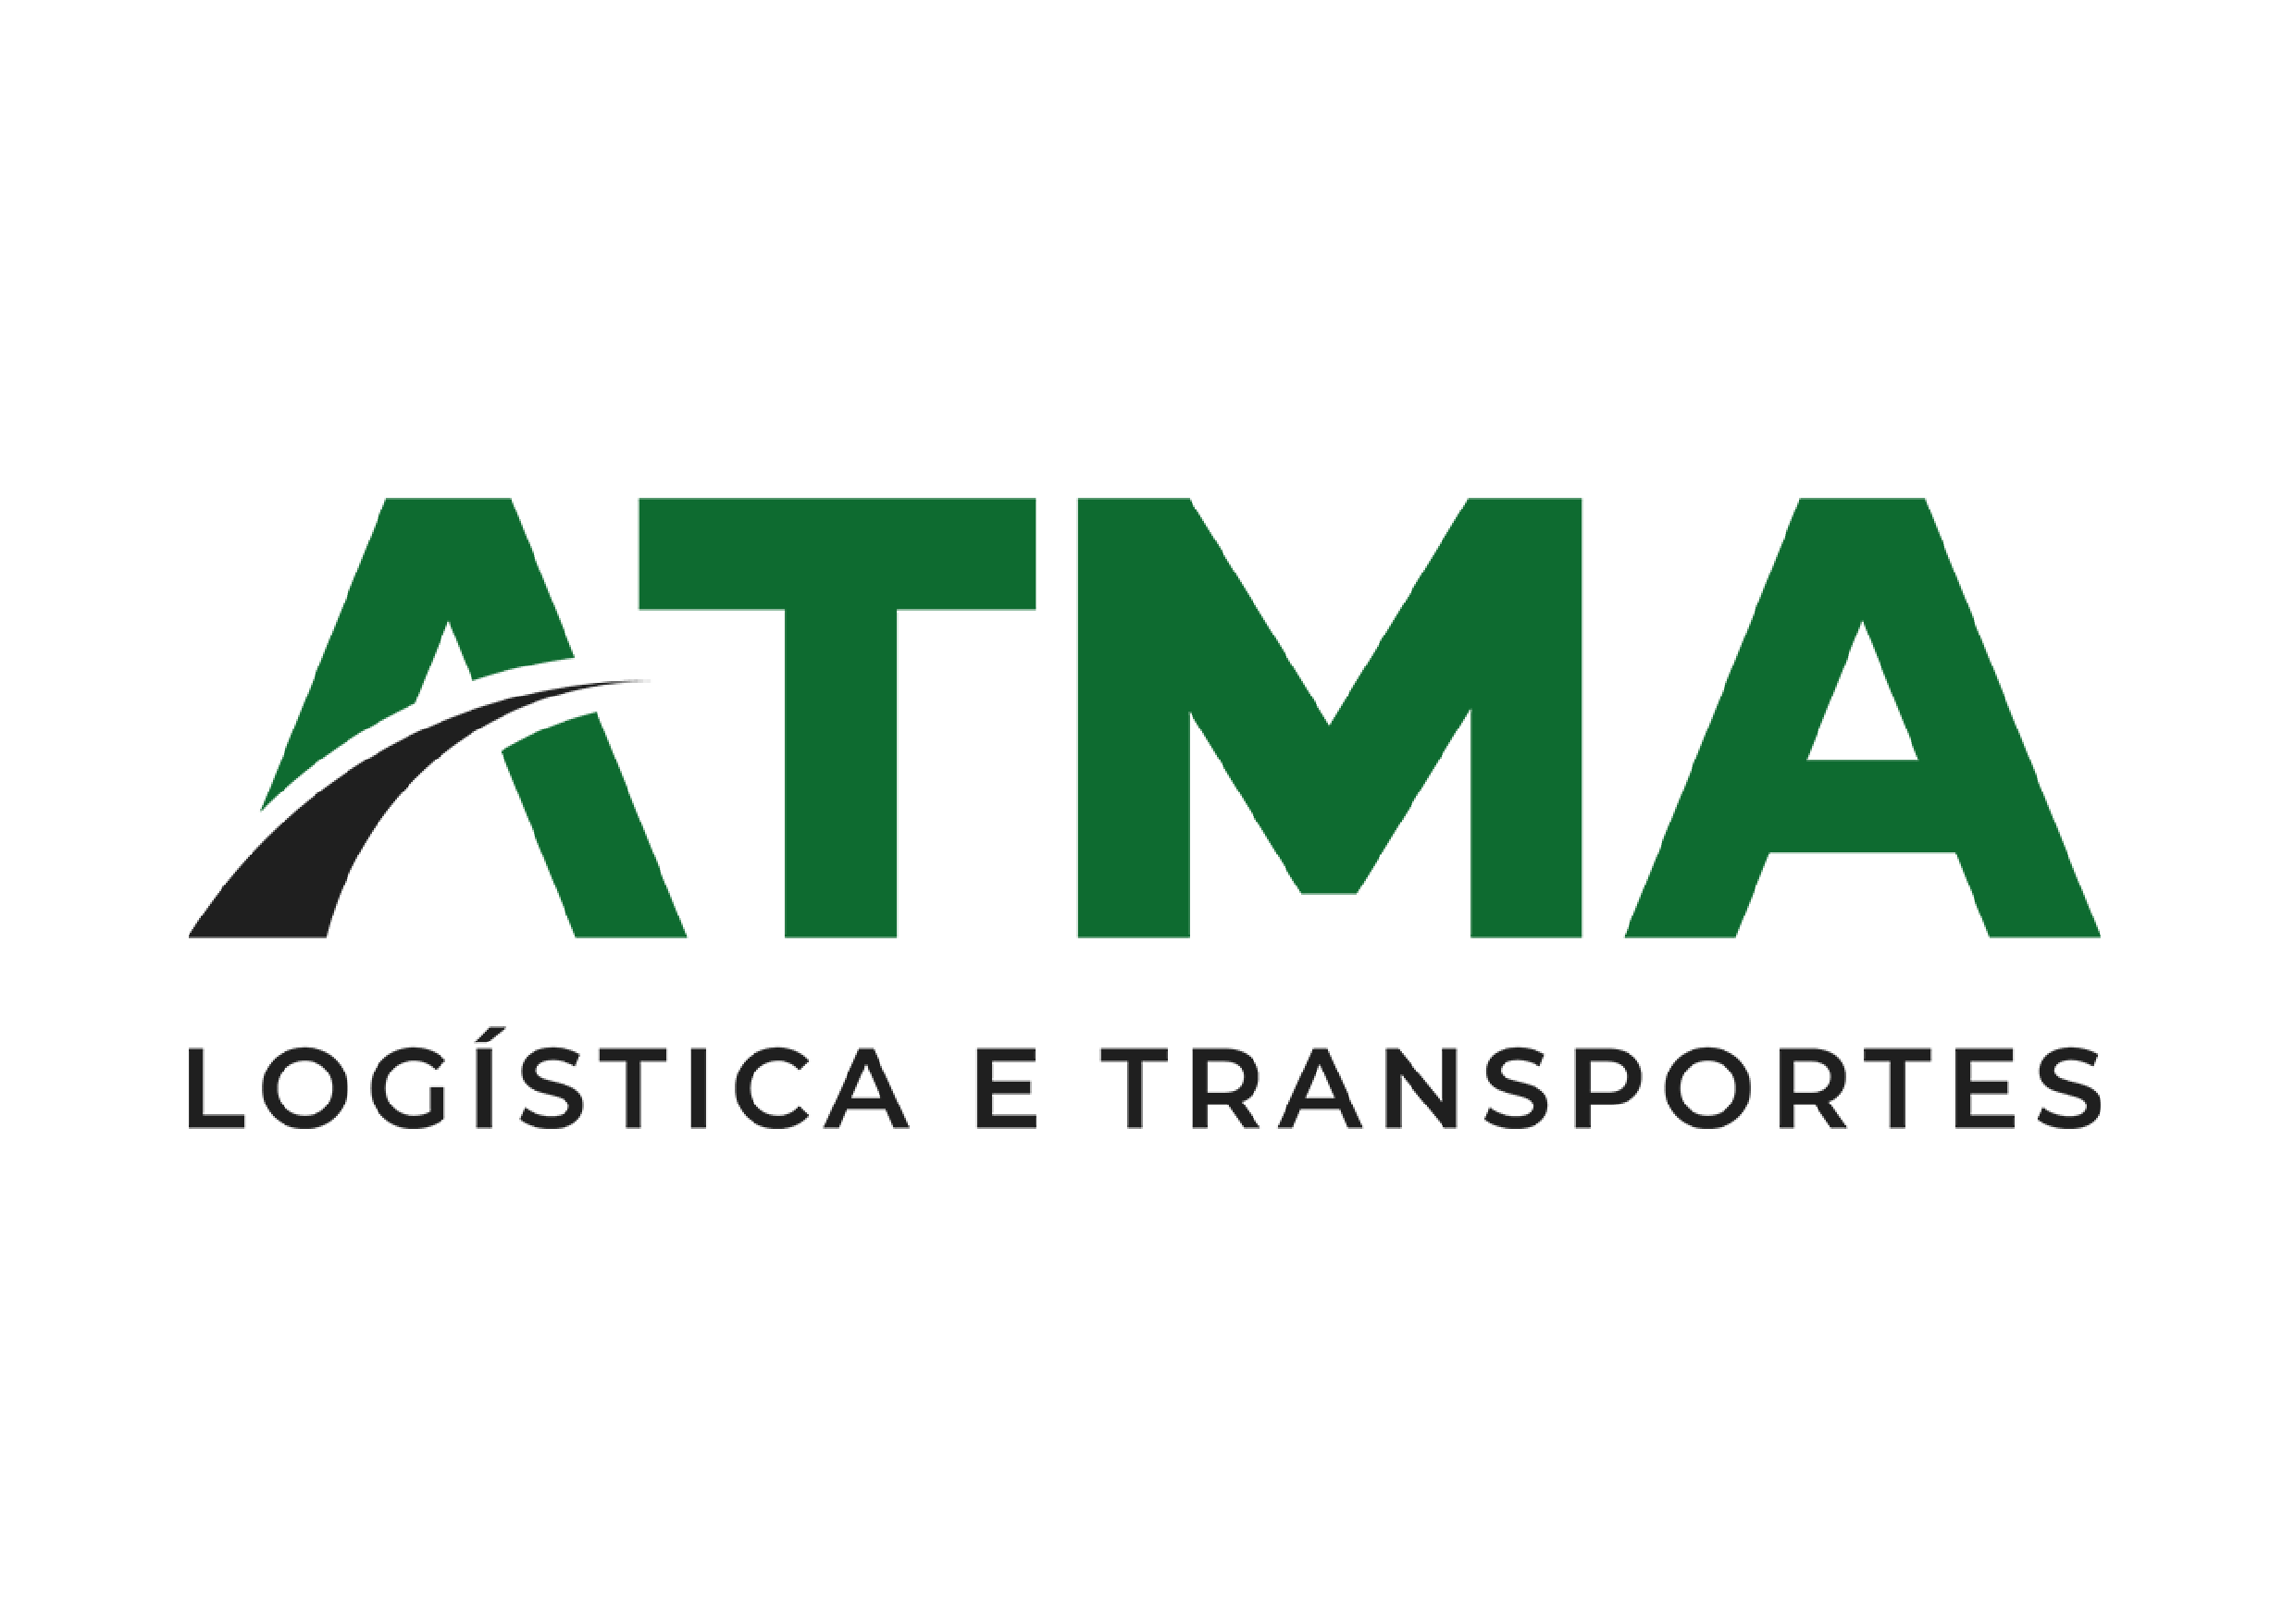 atma-logistica-transportes[COLOR]_Prancheta 1